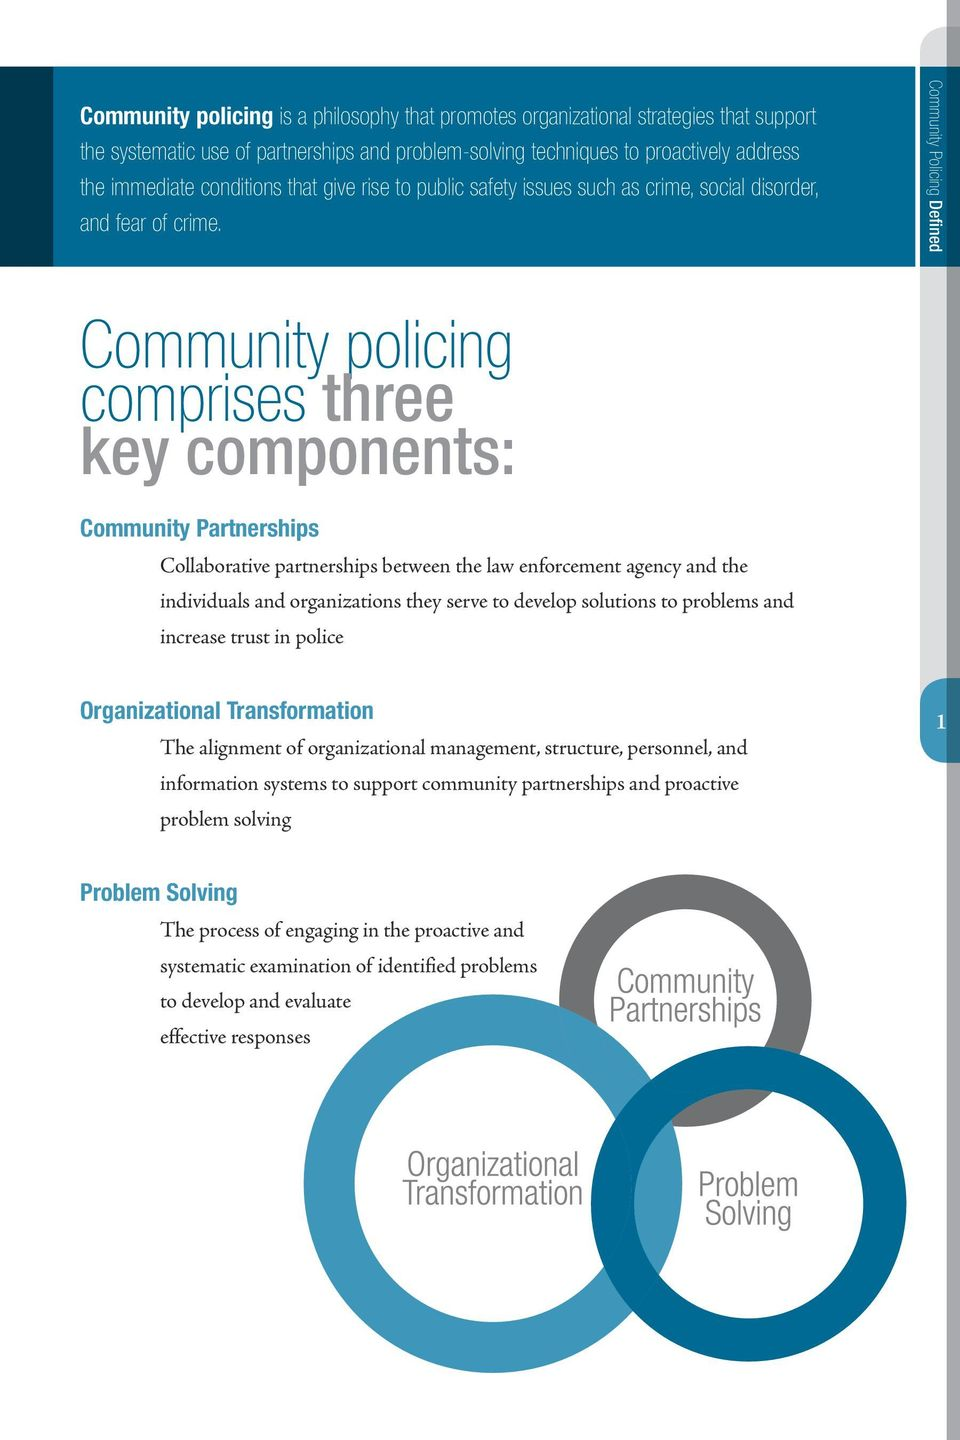 Community Policing Defined Community policing comprises three key components: Community Partnerships Collaborative partnerships between the law enforcement agency and the individuals and